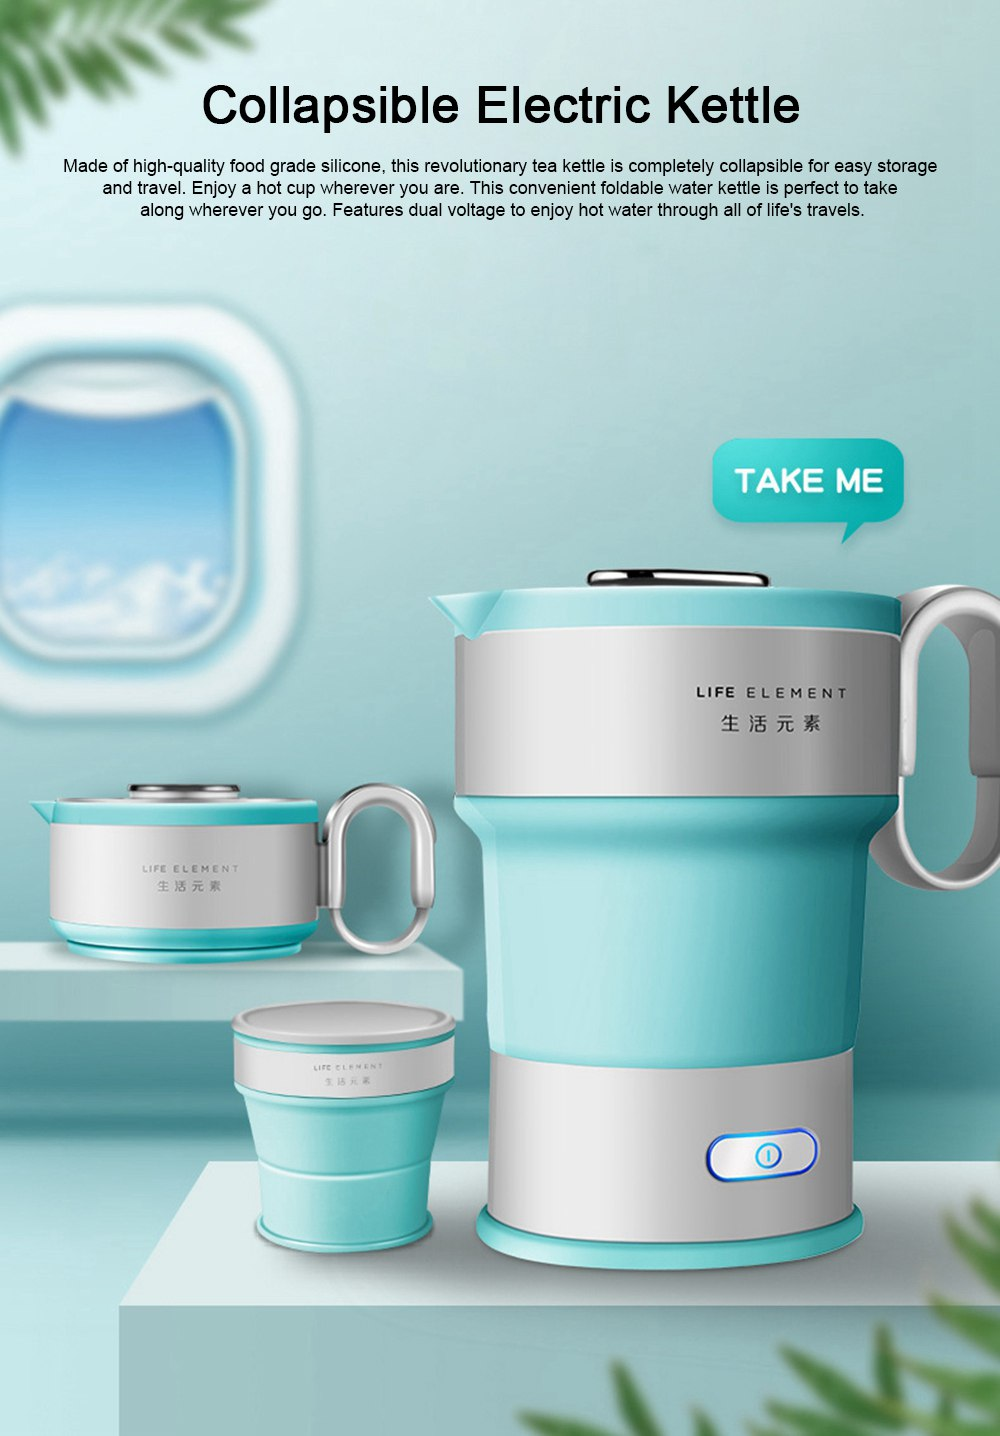 Portable Electric Compressed Kettle, Food Grade Silicone Collapsible Electric Kettle for Travel 0